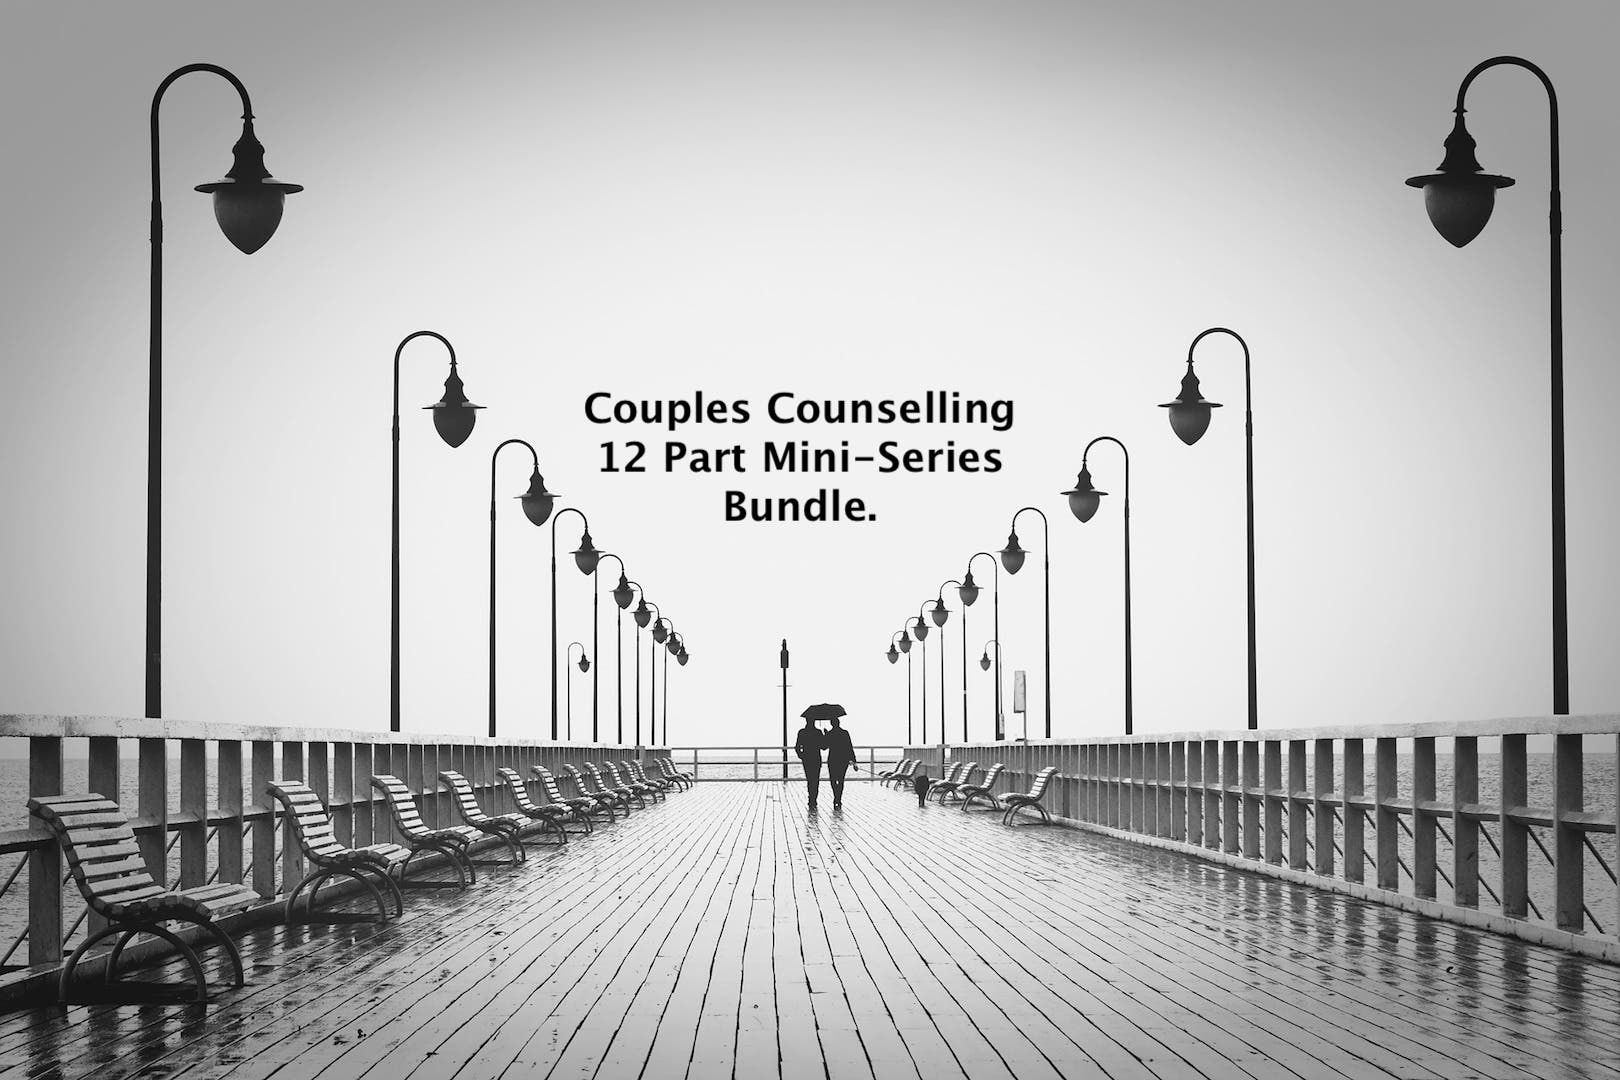 Couples Counselling 12 Part Mini-Series Bolt On.